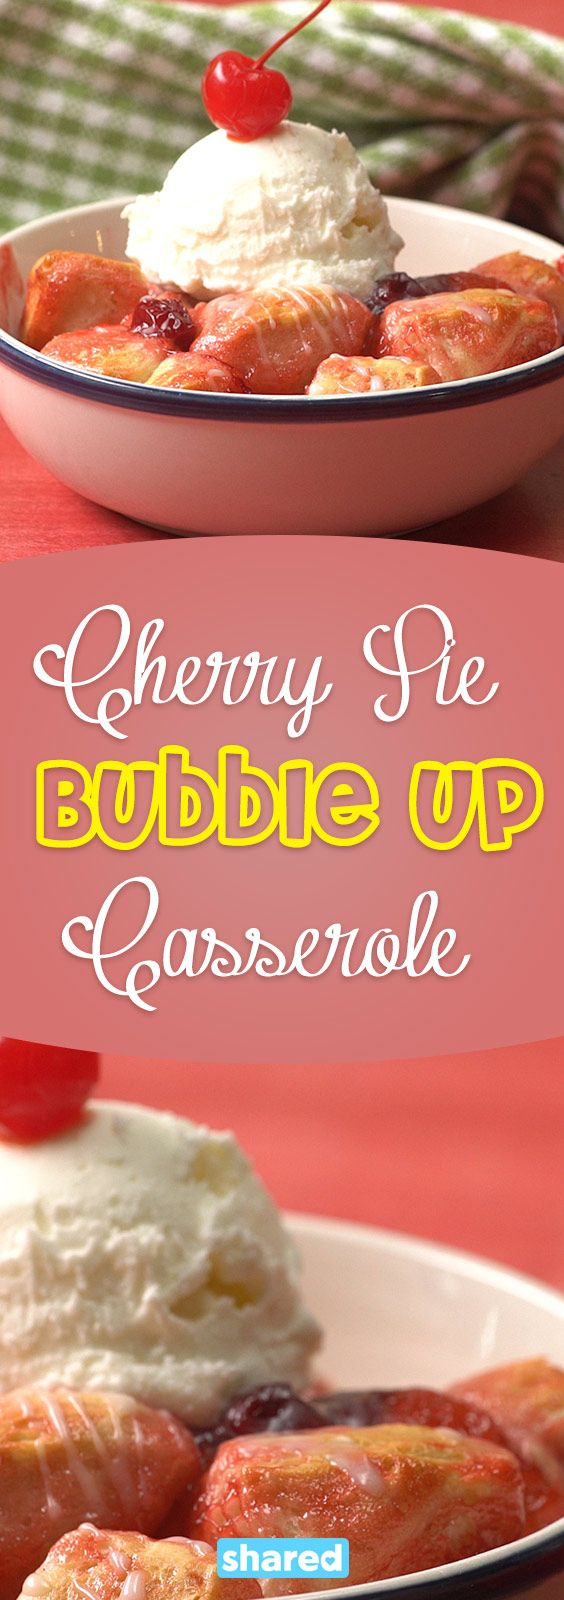 I know the feeling, you've got a crowd of people to serve dessert to, but you just don't know what to make! Who wants to slave over a cake when you can make a quick and easy Cherry Pie Bubble Up Casserole?! This recipe is seriously the simplest, most delicious dessert you'll come across. All you need is some canned biscuit dough, cherry pie filling, and to whip up a quick glaze for when it comes out! You'll love this scrumptious treat!